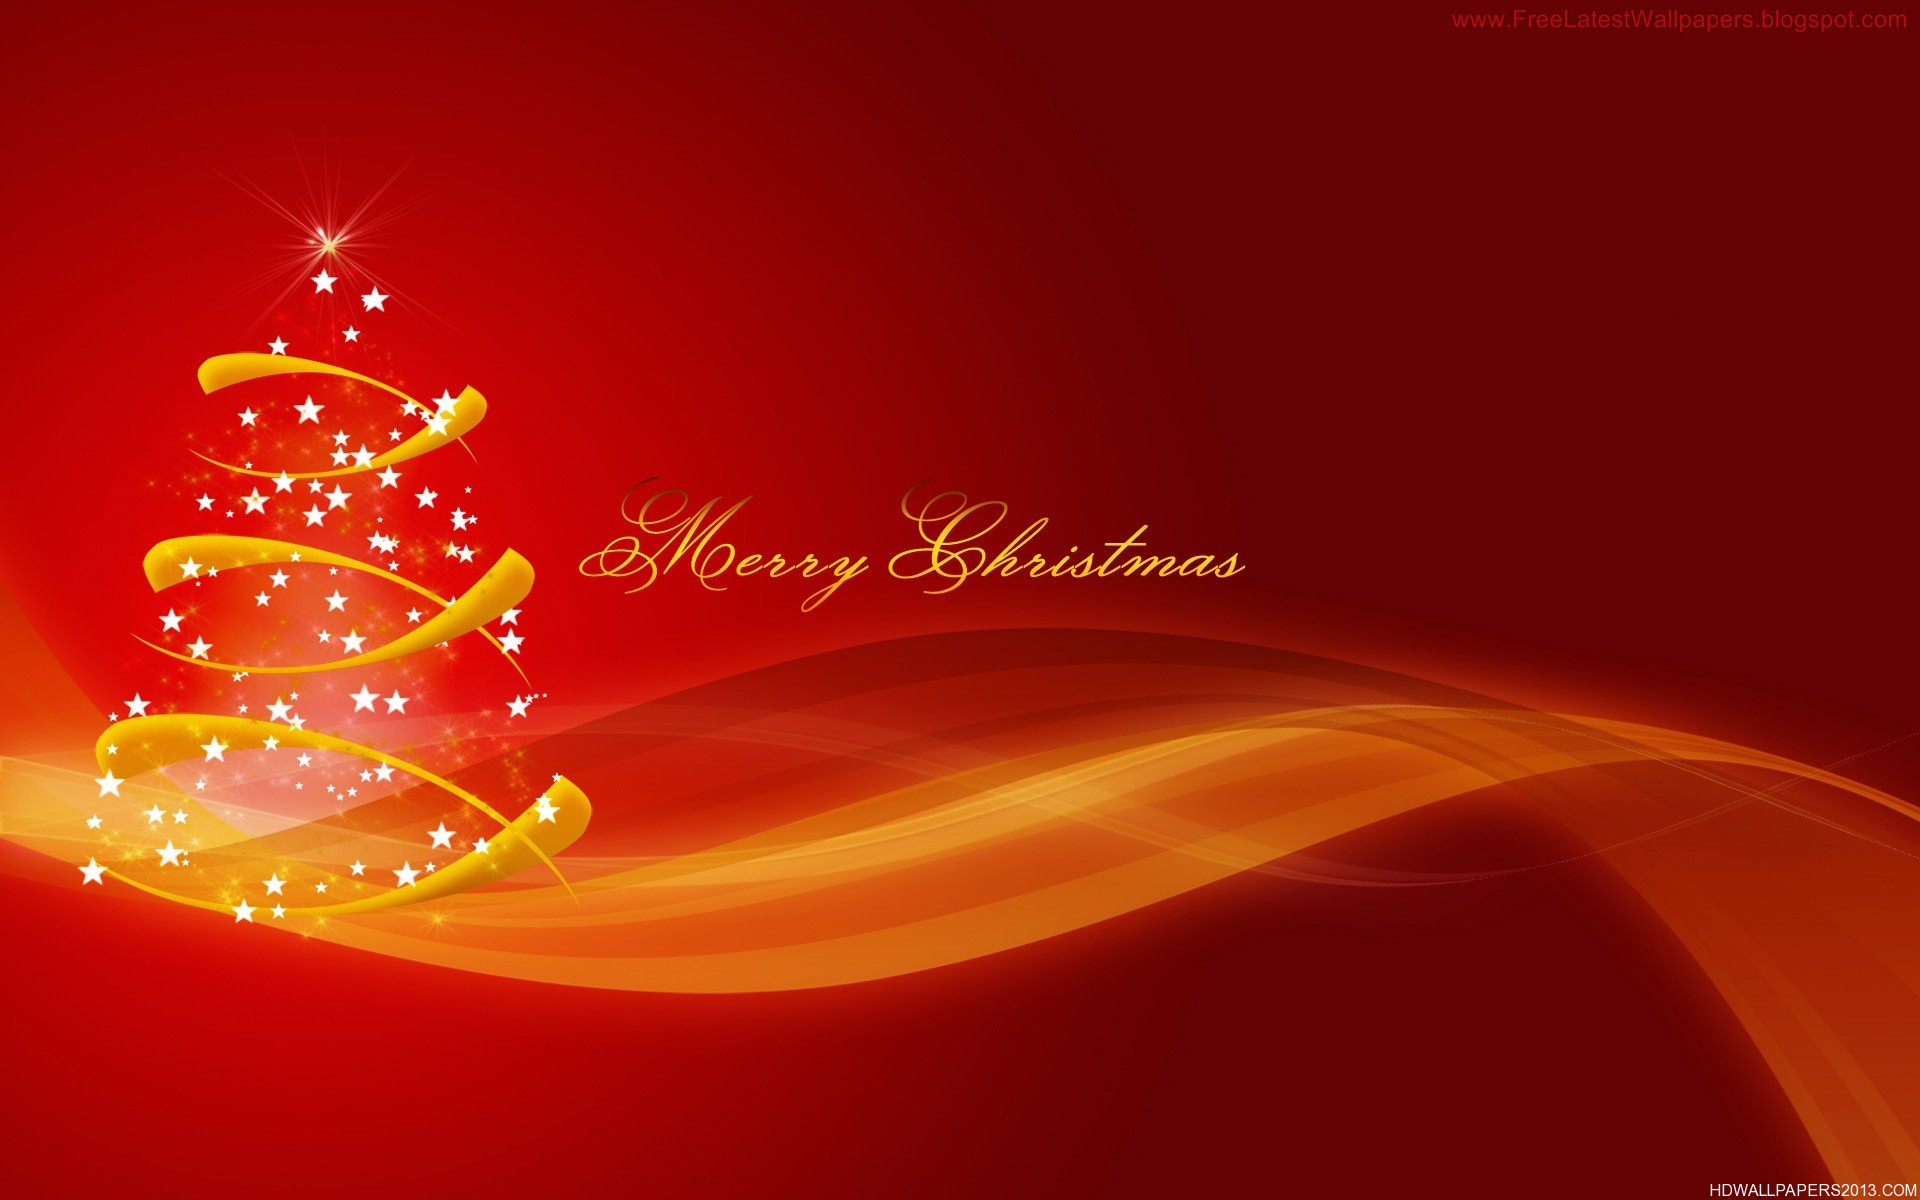 Merry Christmas Hd Wallpaper.Merry Christmas Hd Wallpaper High Definition Wallpapers